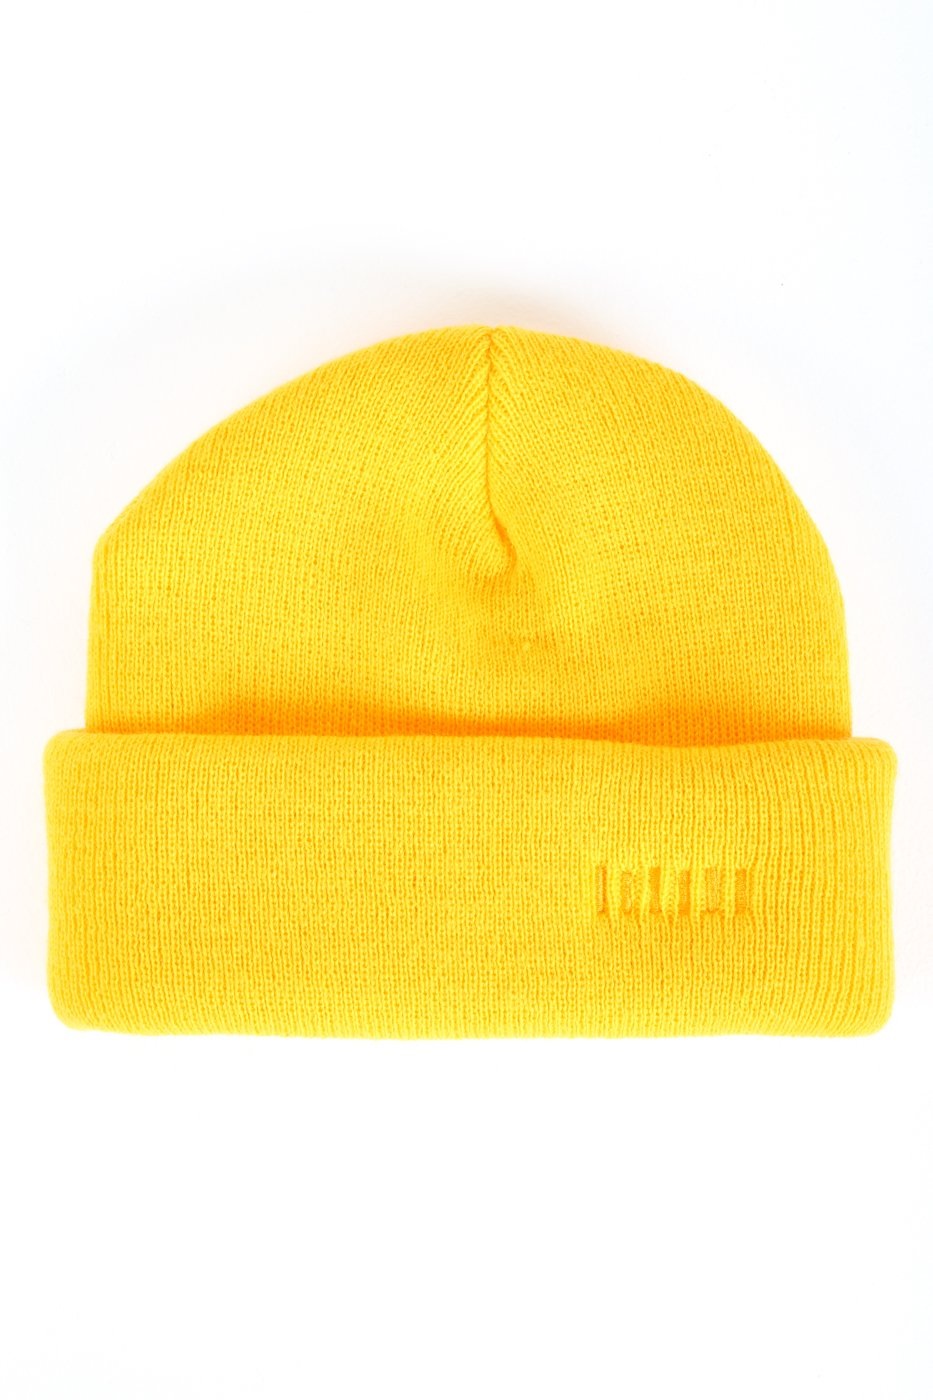 Yellow Two-Way Beanie Hat